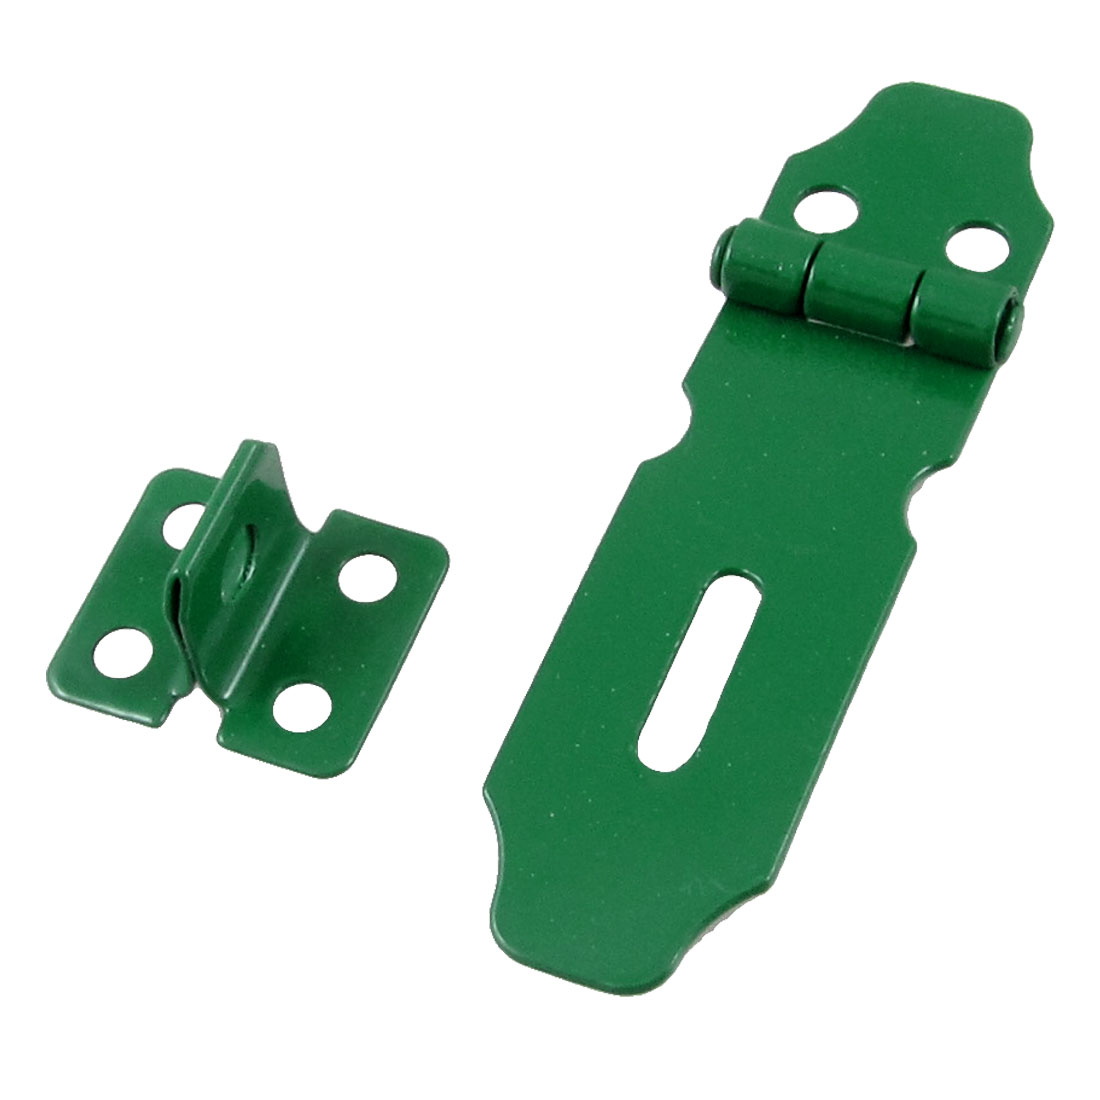 "Green Metal Drawer Cabinet Gate Padlock Latch Door 3"" Hasp Staple"